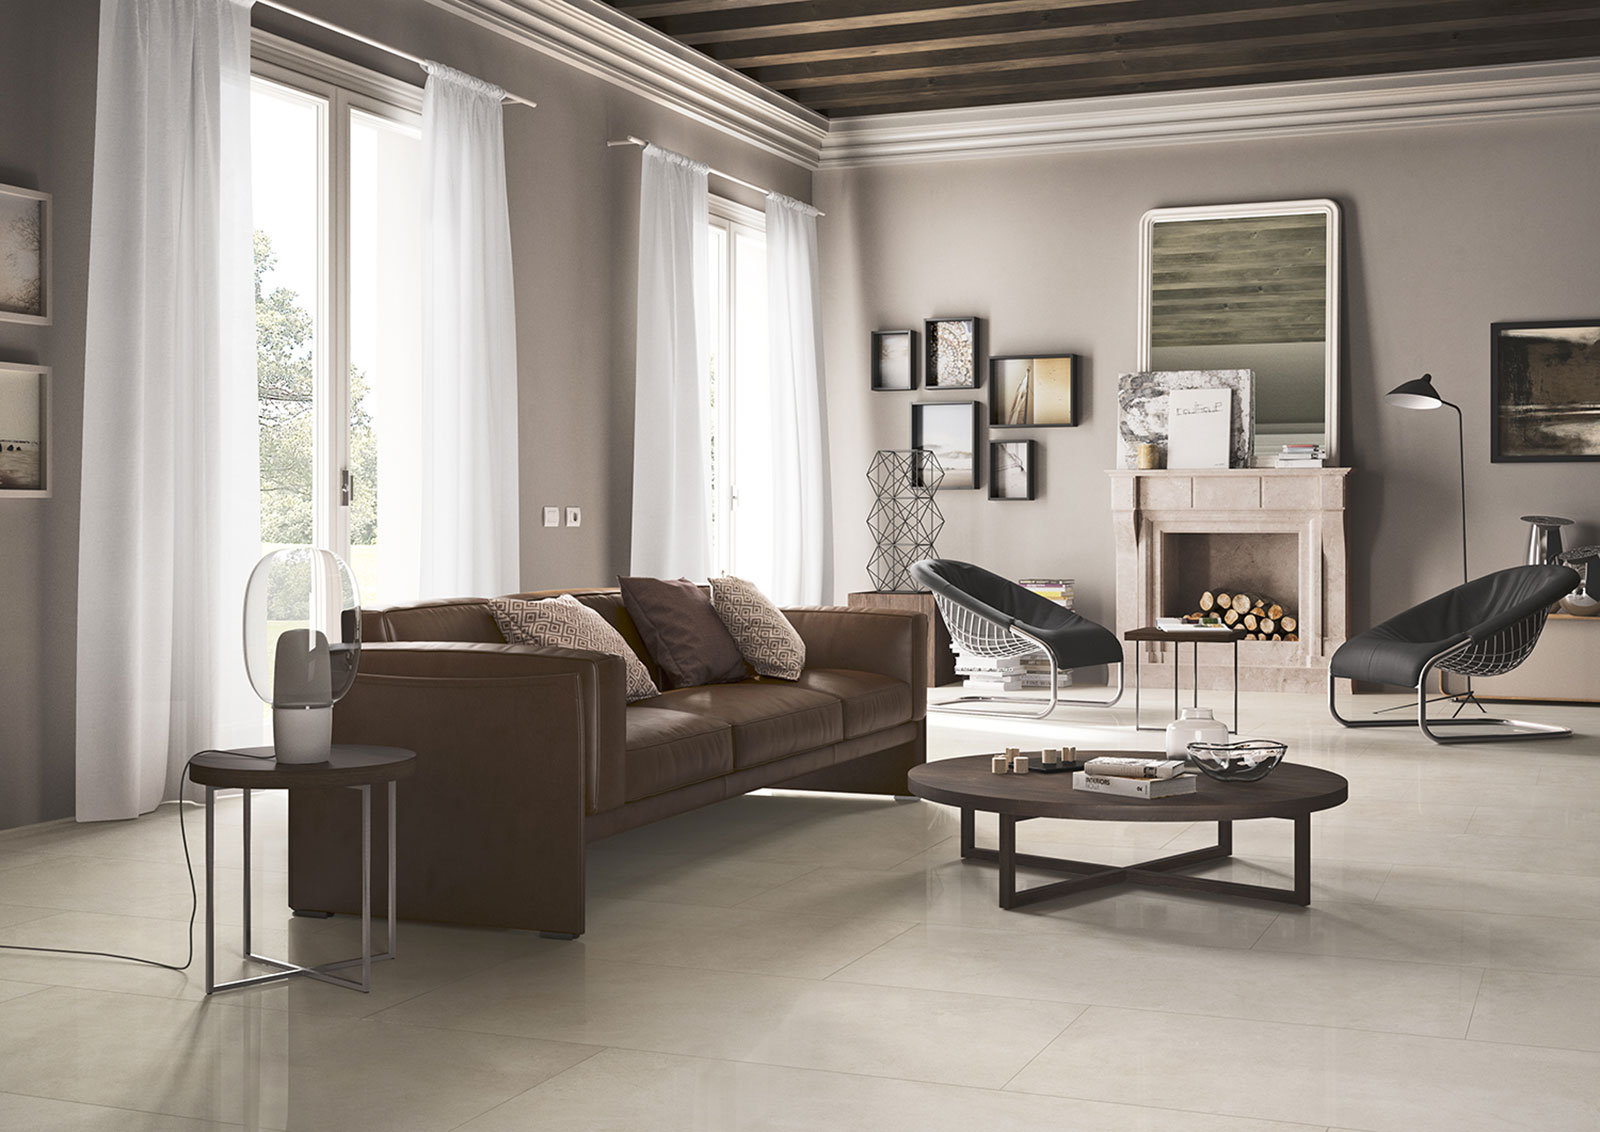 Living room floor inspiration for your furniture marazzi for Living room floor decor